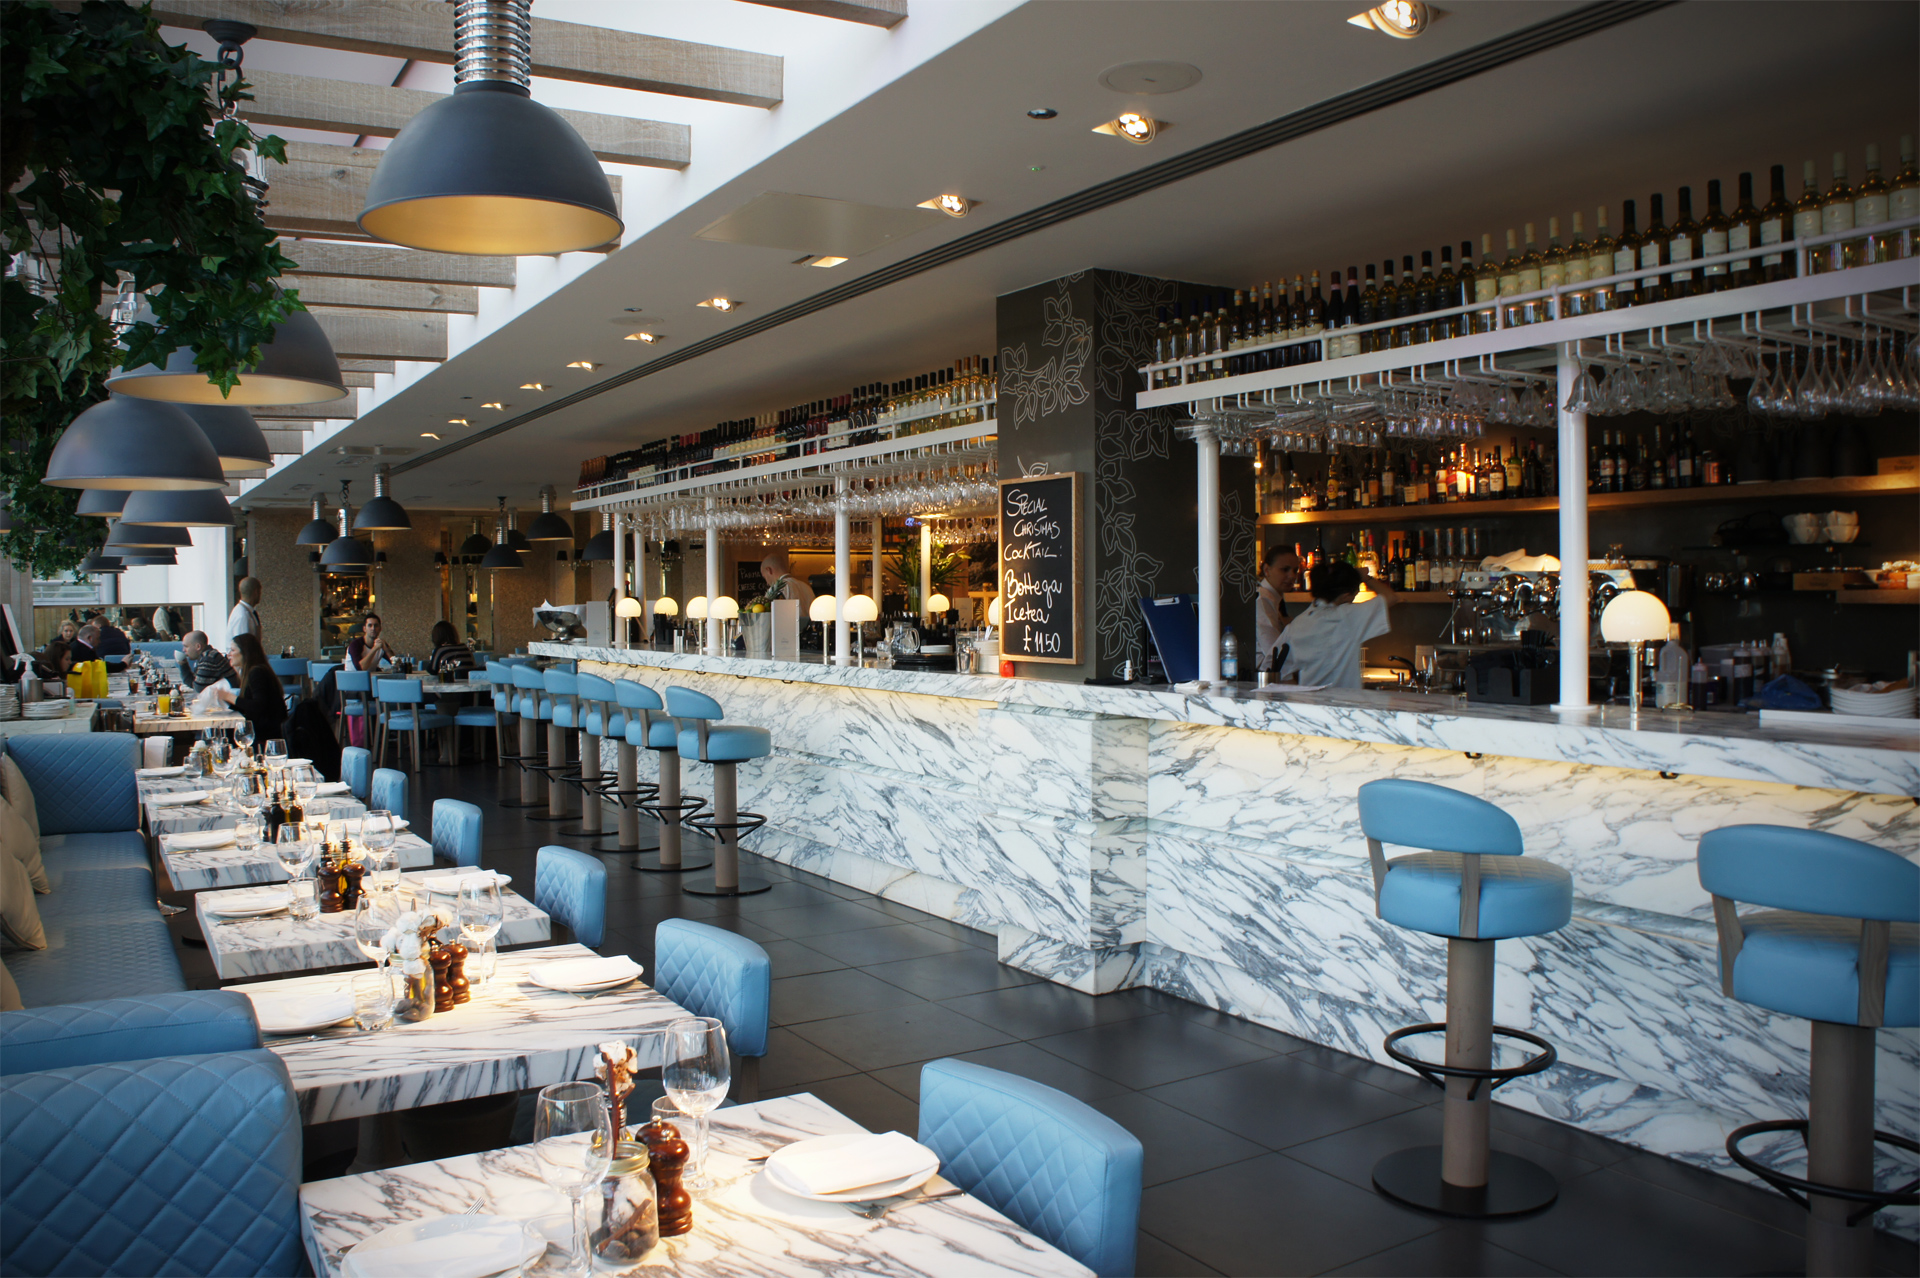 image-taken-from-Sancarlo.com-manchester-10